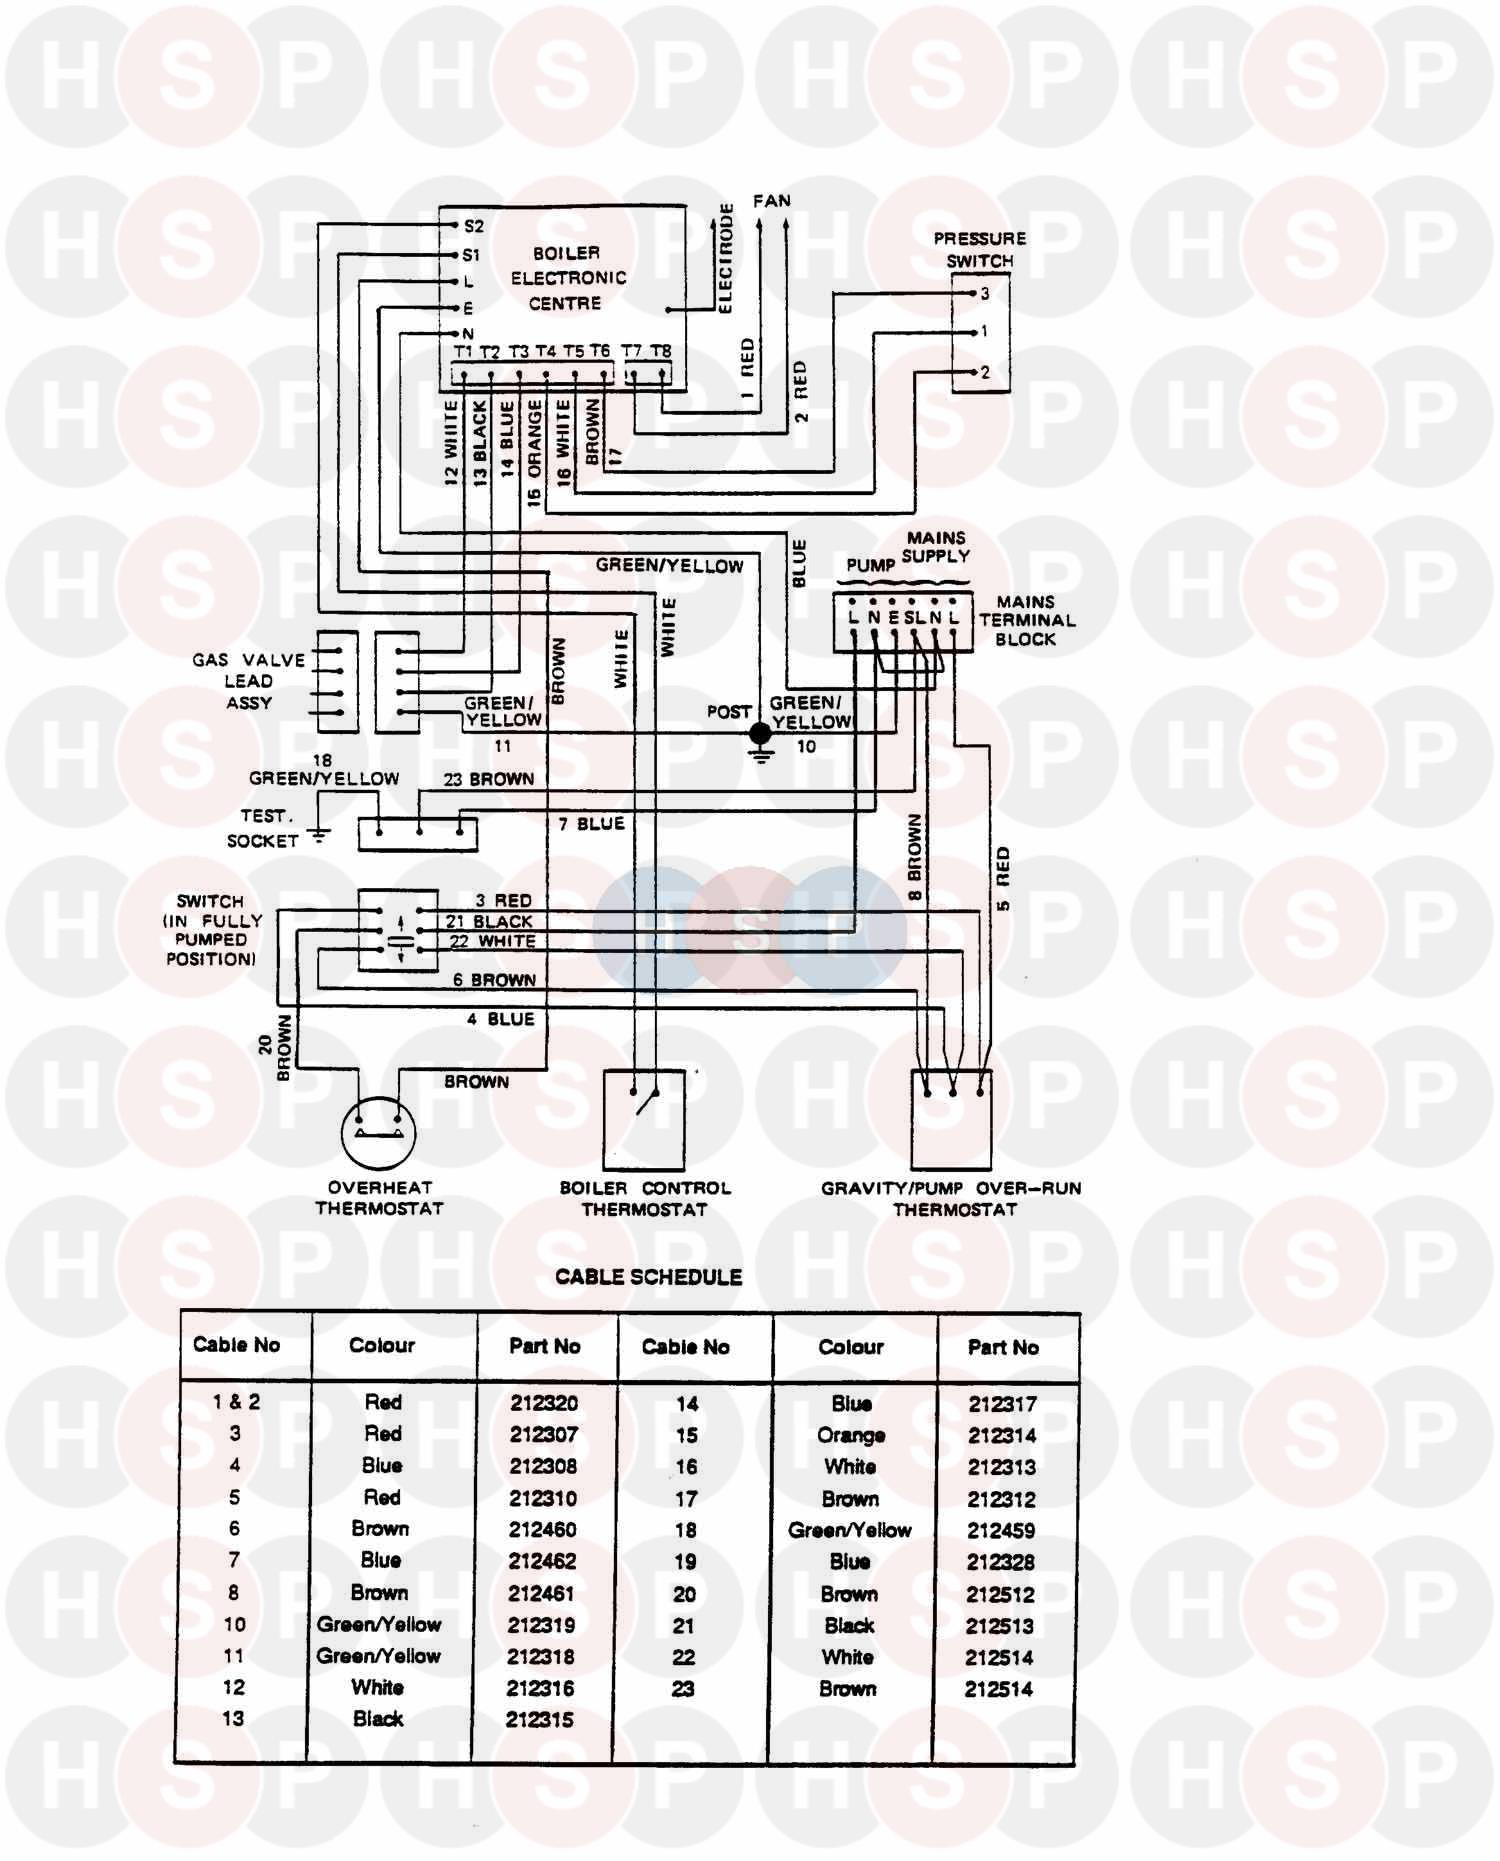 Potterton netaheat profile 50e wiring diagram heating spare parts click the diagram to open it on a new page cheapraybanclubmaster Gallery